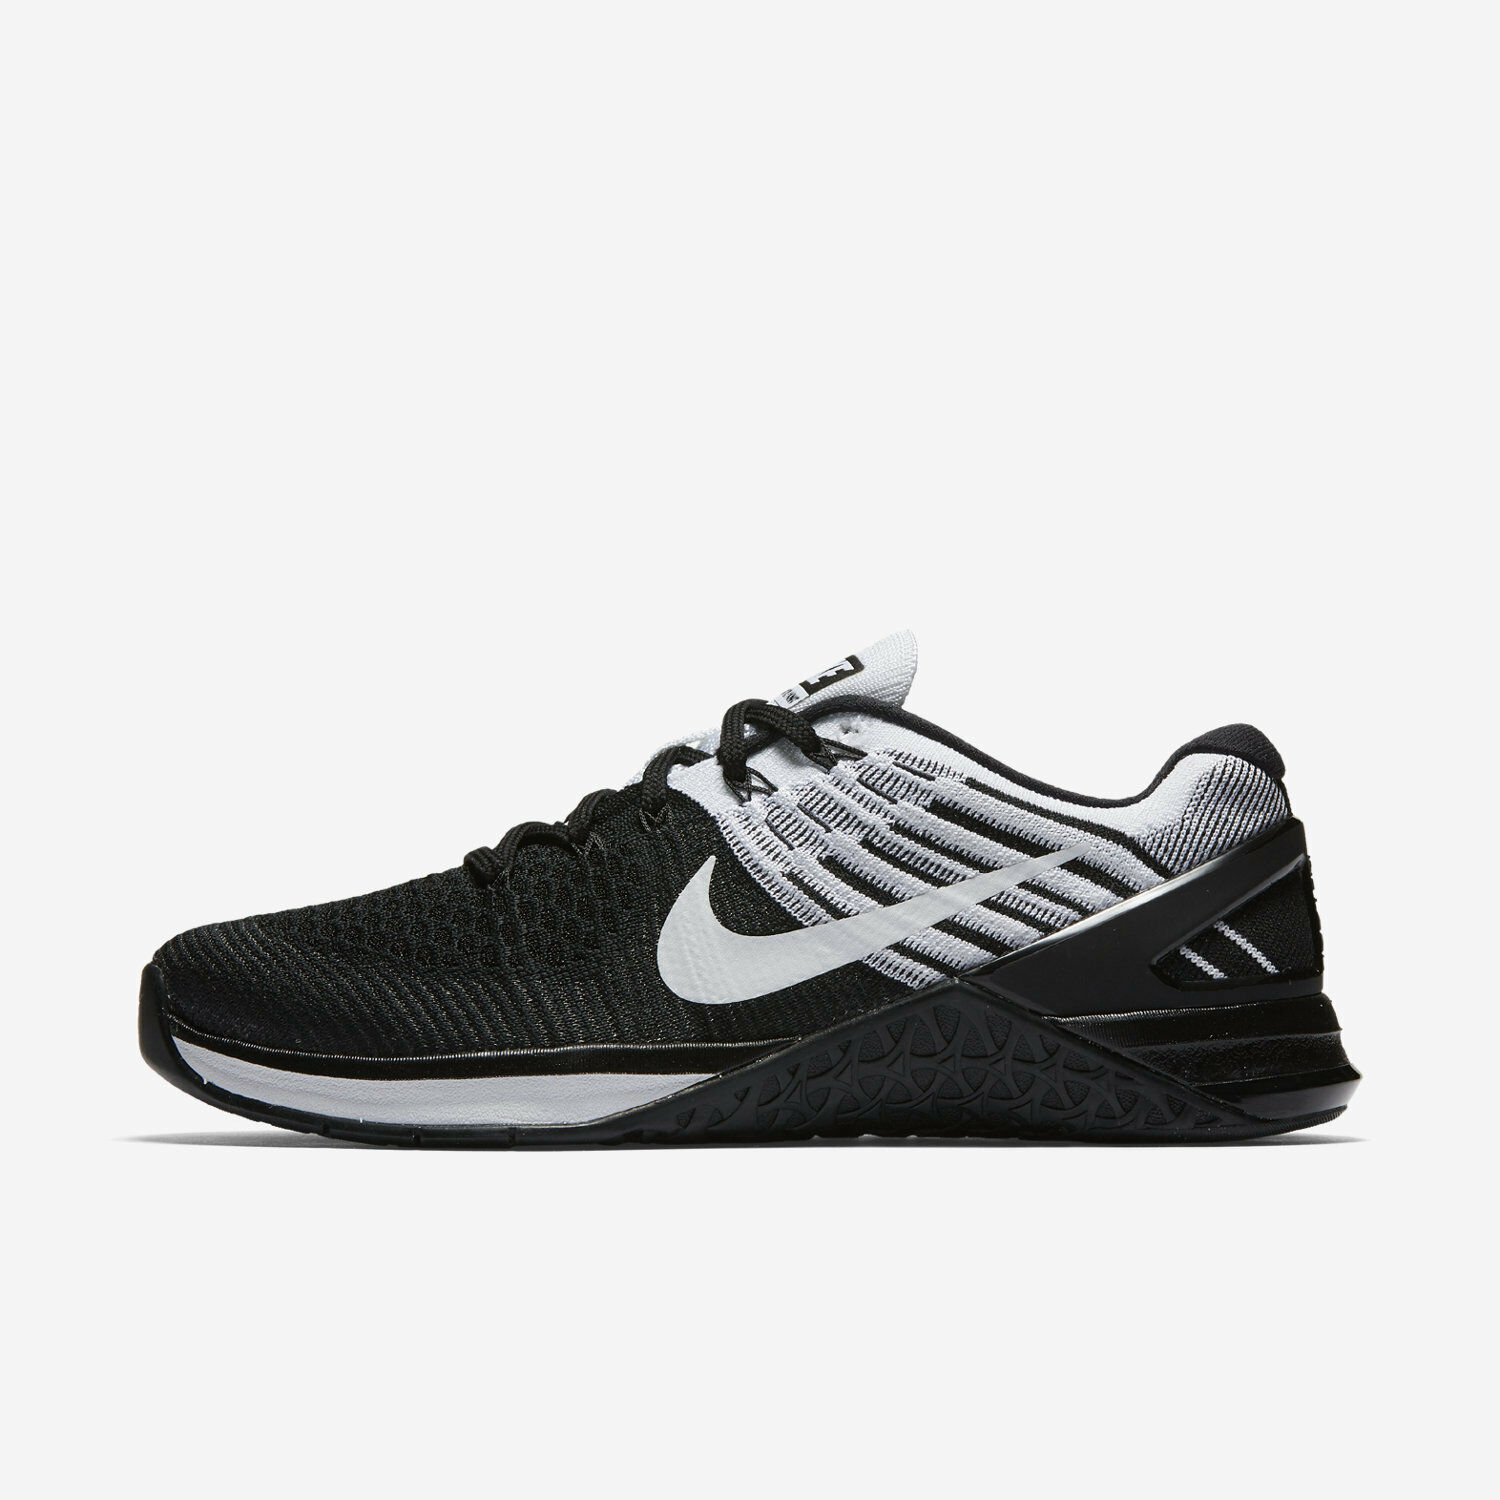 Wmns Nike Metcon DSX Flyknit Sz 5.5-11.5 Black/White 849809-001 FREE SHIPPING The latest discount shoes for men and women